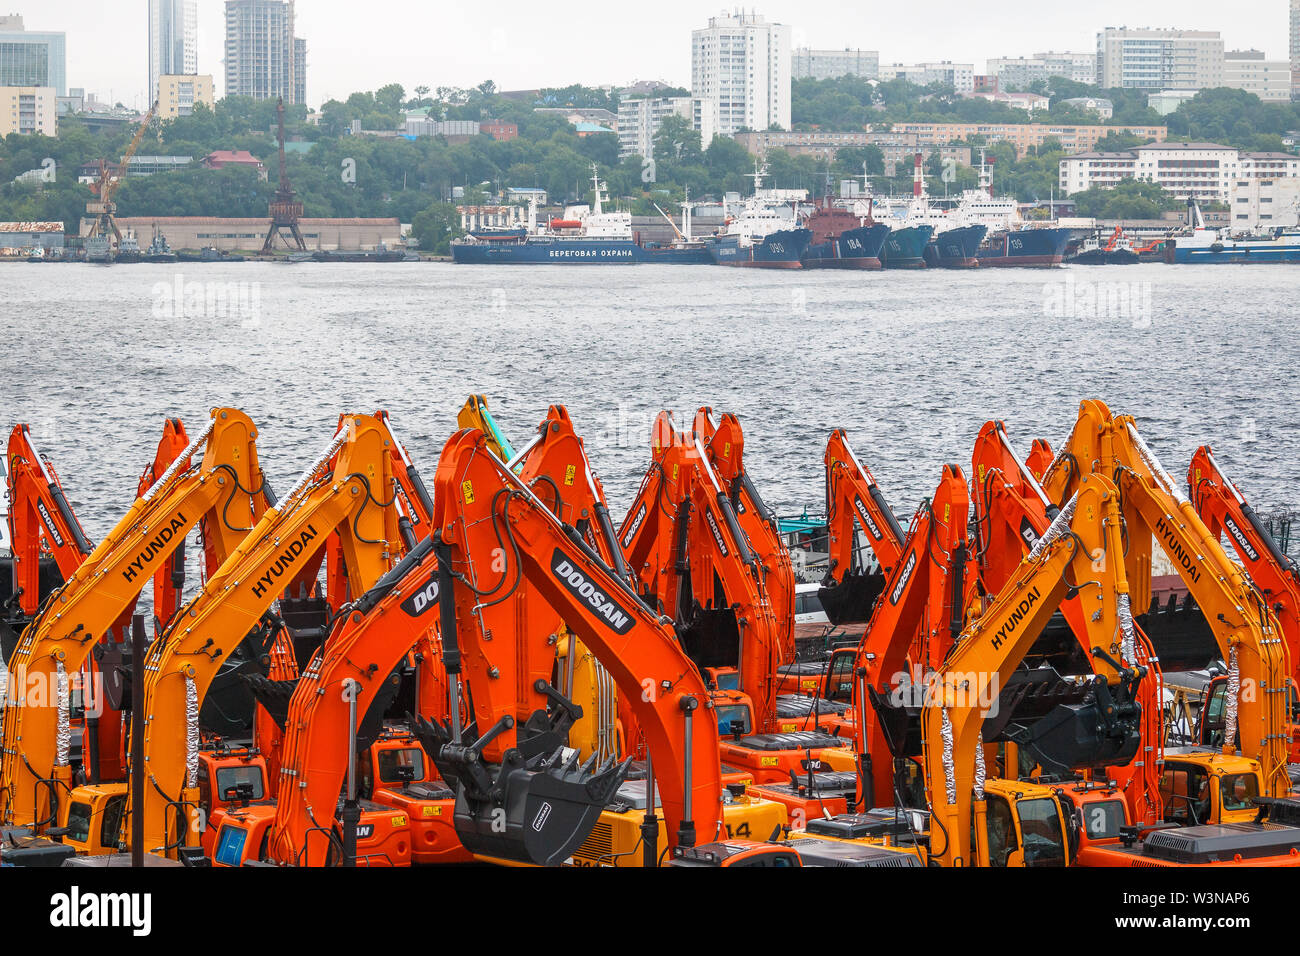 VLADIVOSTOK, RUSSIA - JUNE 20, 2019: Imported excavators in the Far Eastern port of the coastal city of Vladivostok are prepared for customs procedure - Stock Image